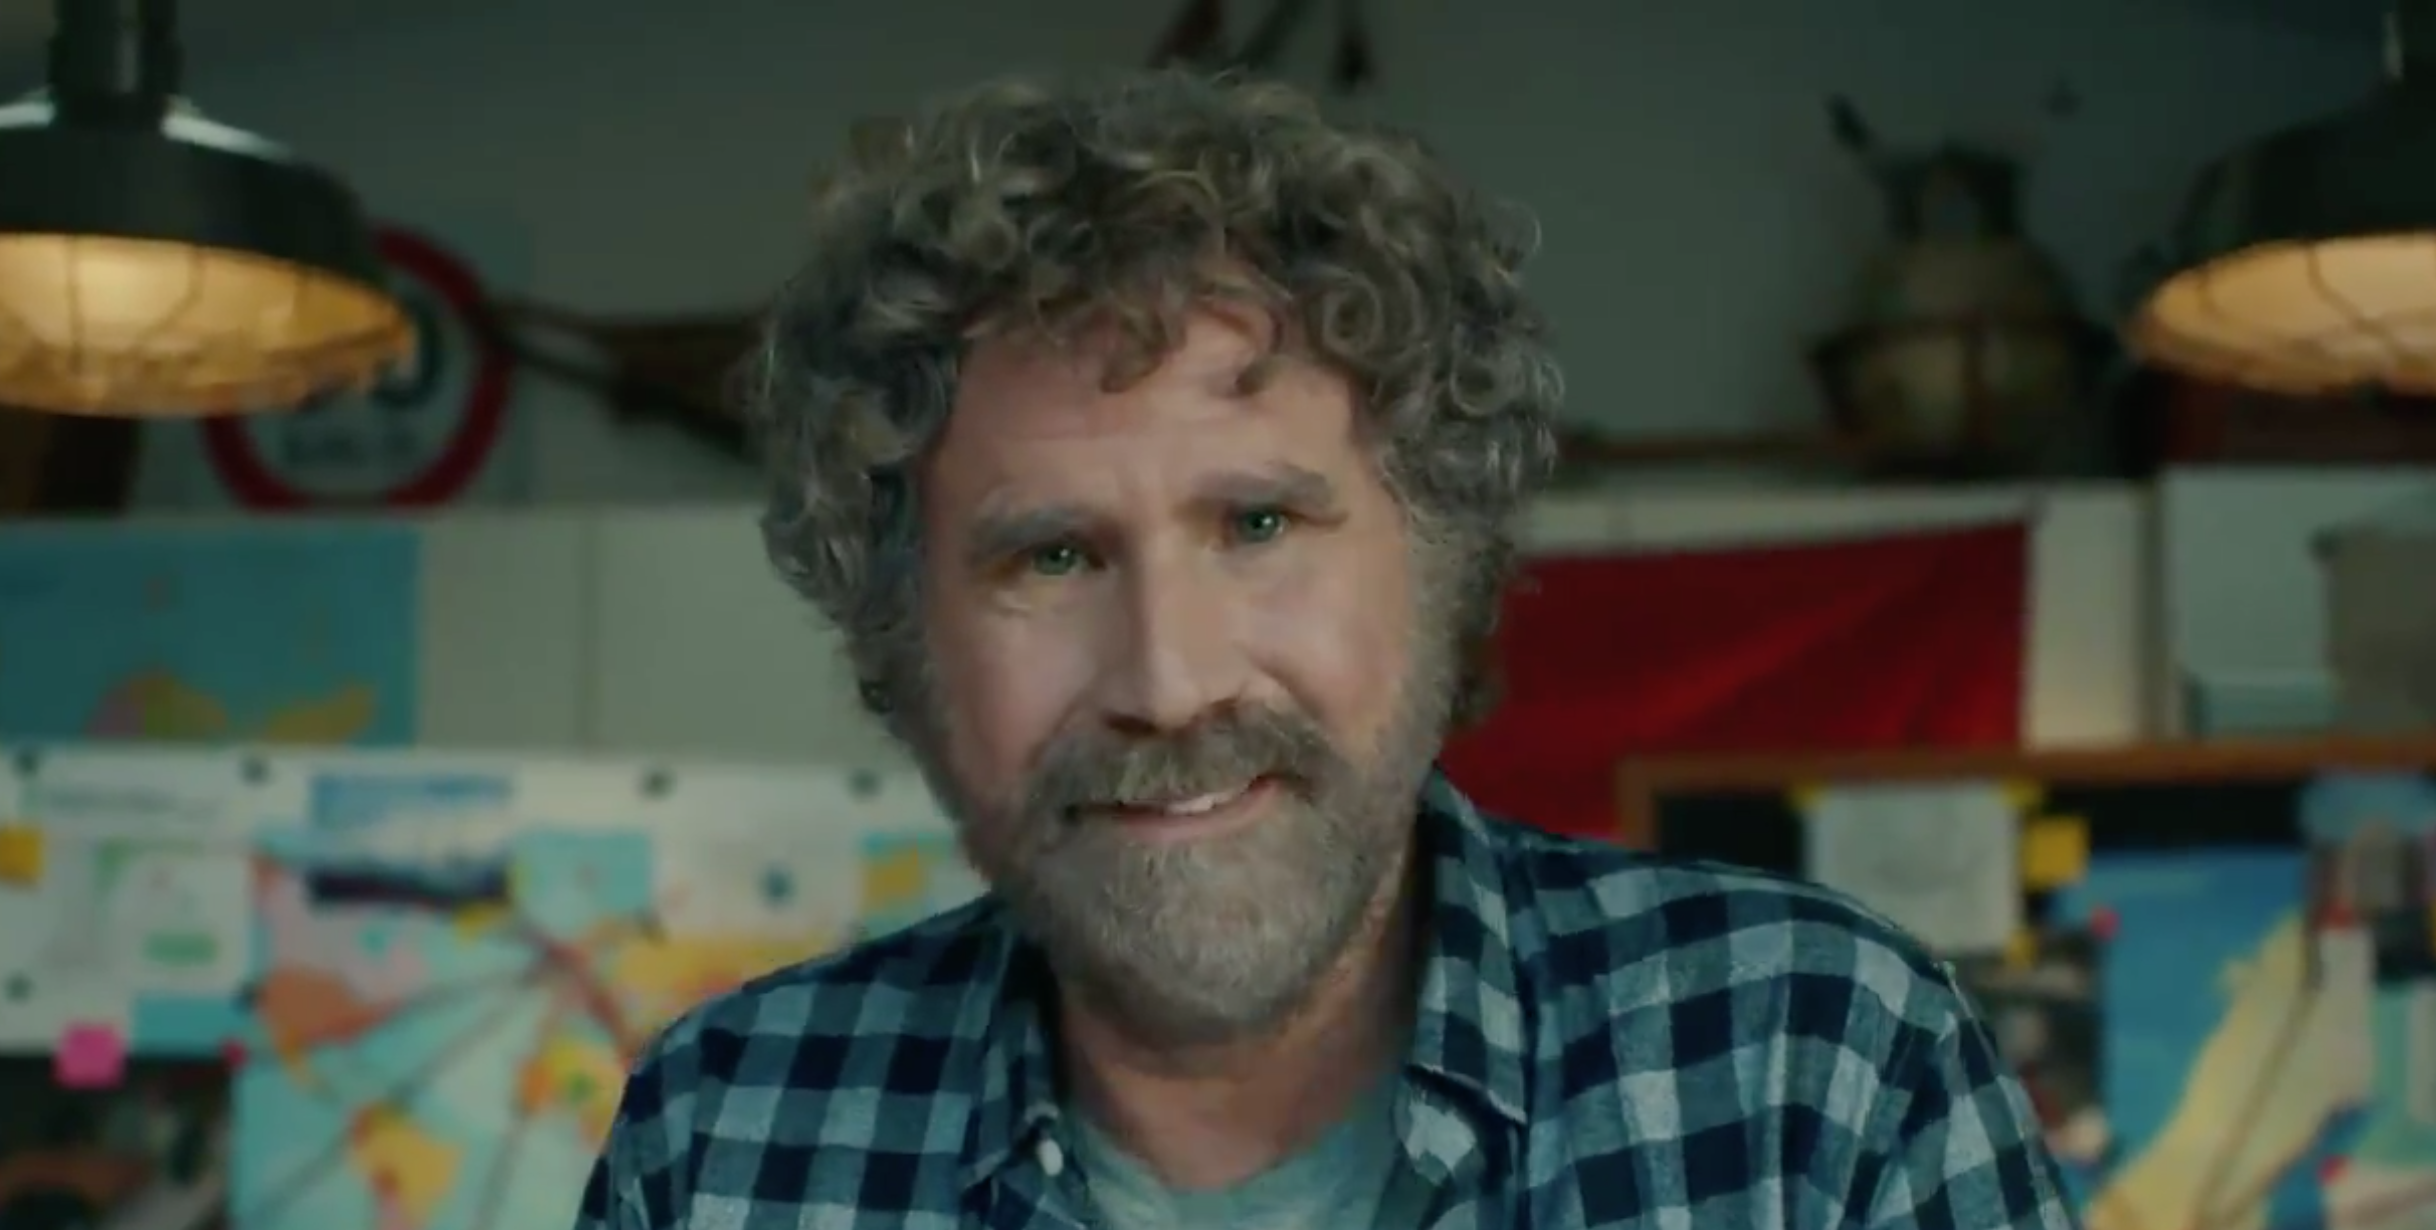 Will Ferrell appears in a new GM ad about electric vehicles.